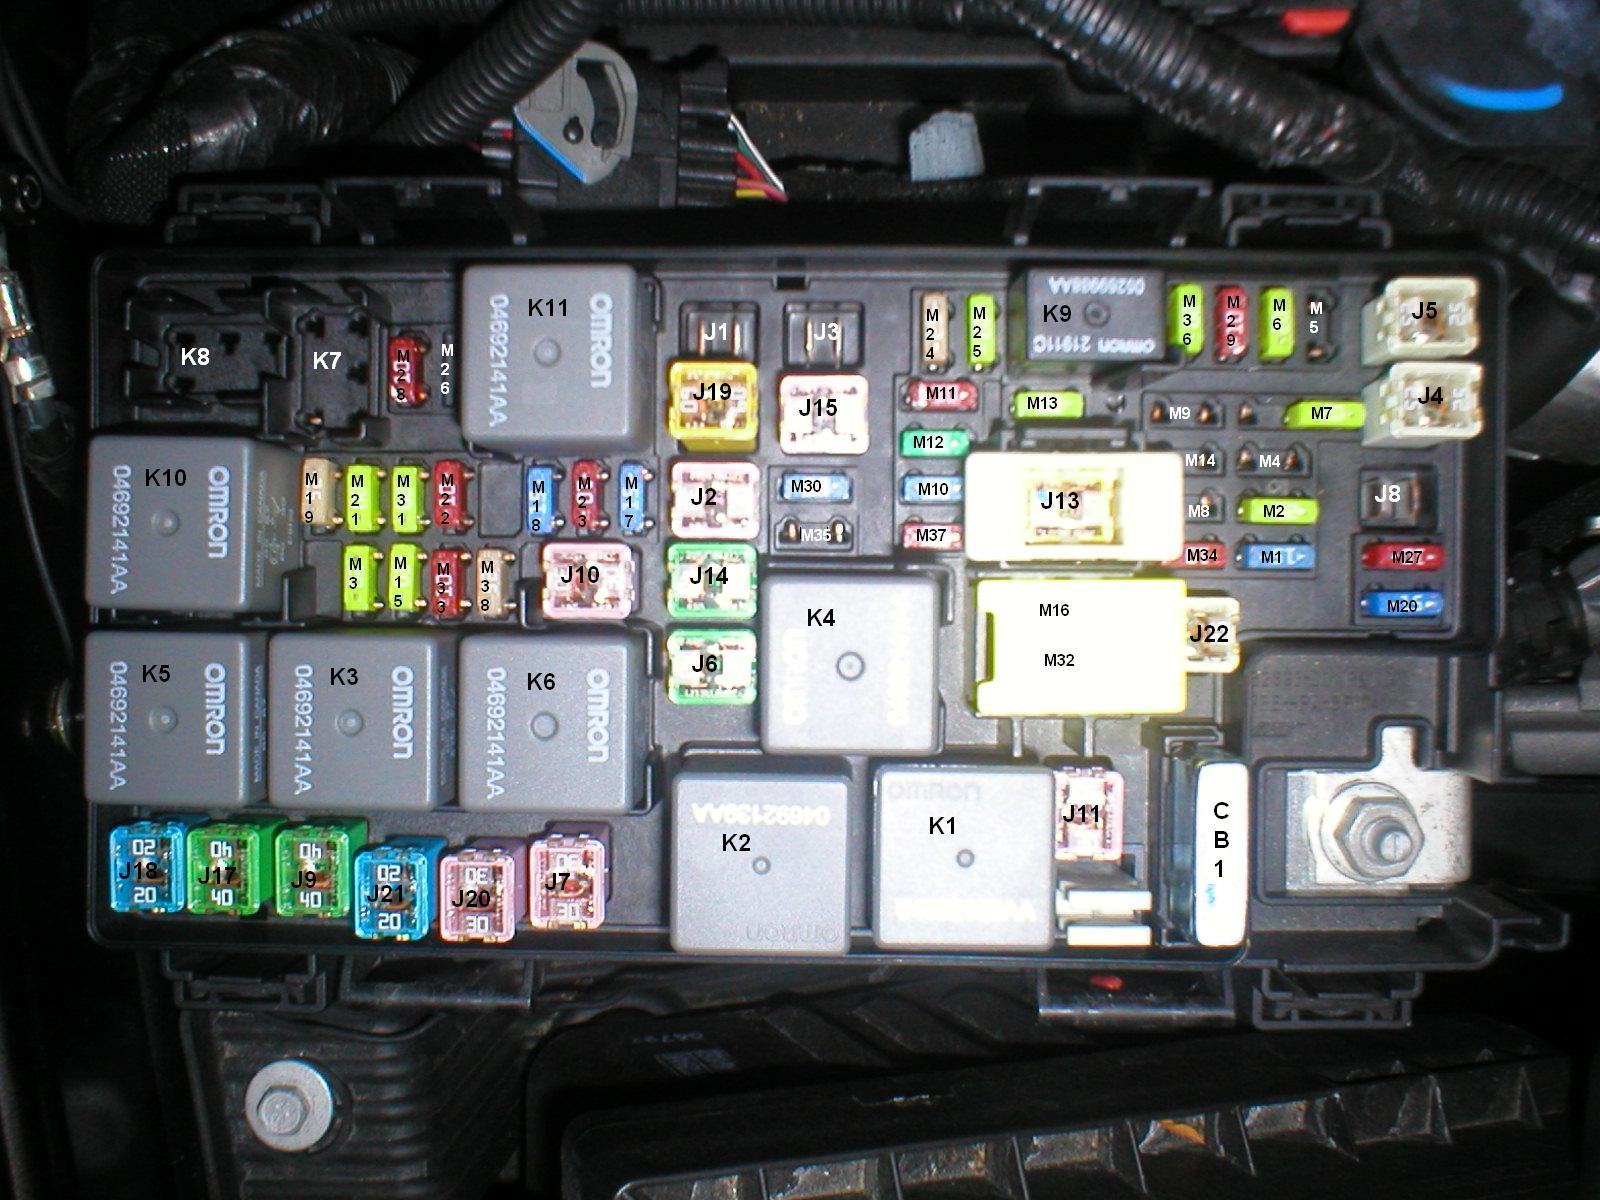 hight resolution of jeep jk fuse box map layout diagram jeepforum com mazda b2500 fuse diagram jeep wrangler fuse diagram